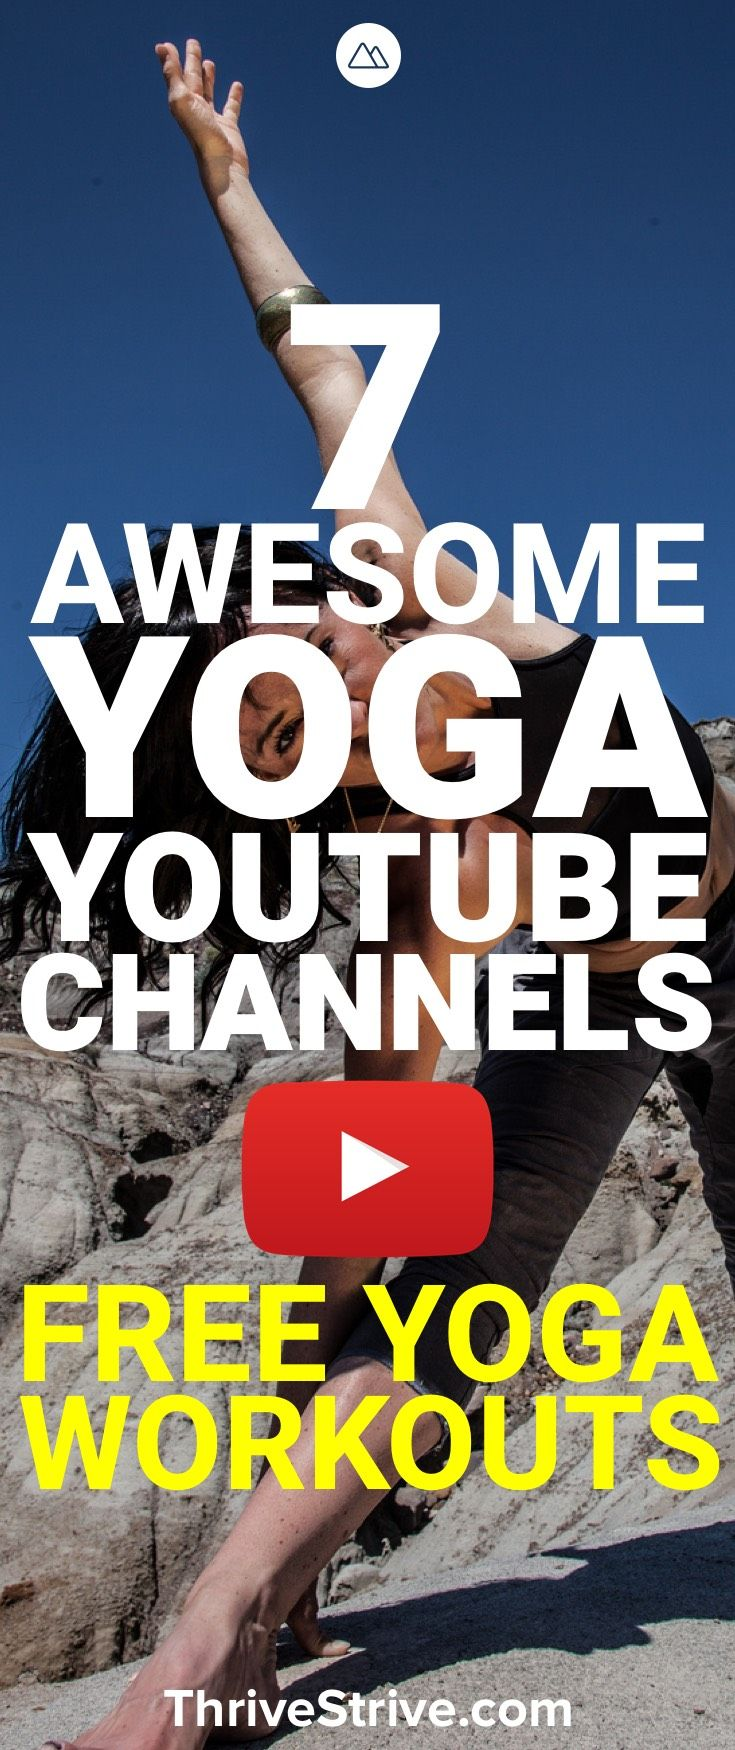 Looking to get started with yoga? Here are 7 awesome youtube channels that are g...